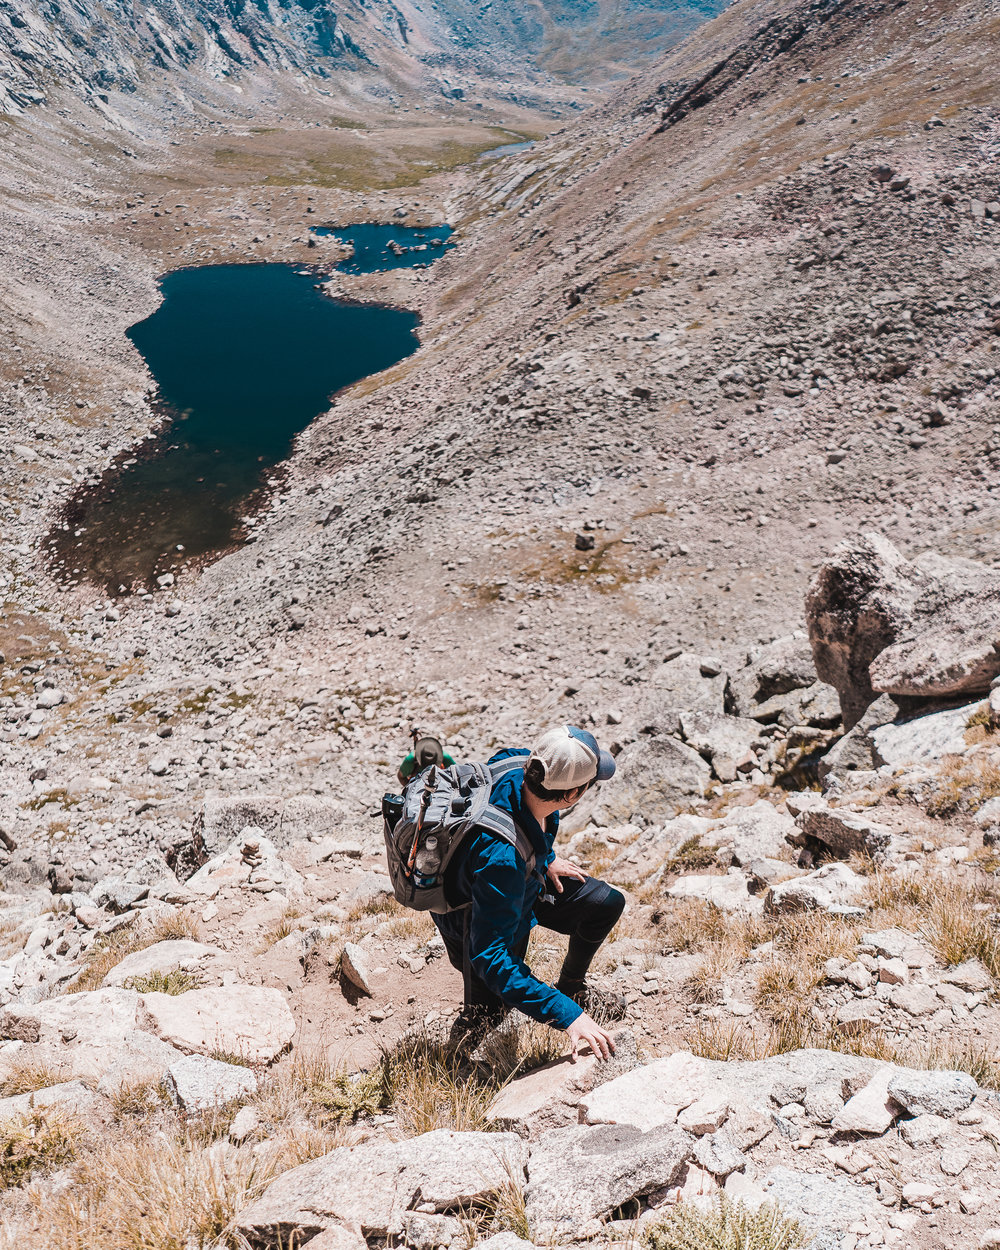 Reptar ascending the talus and scree field